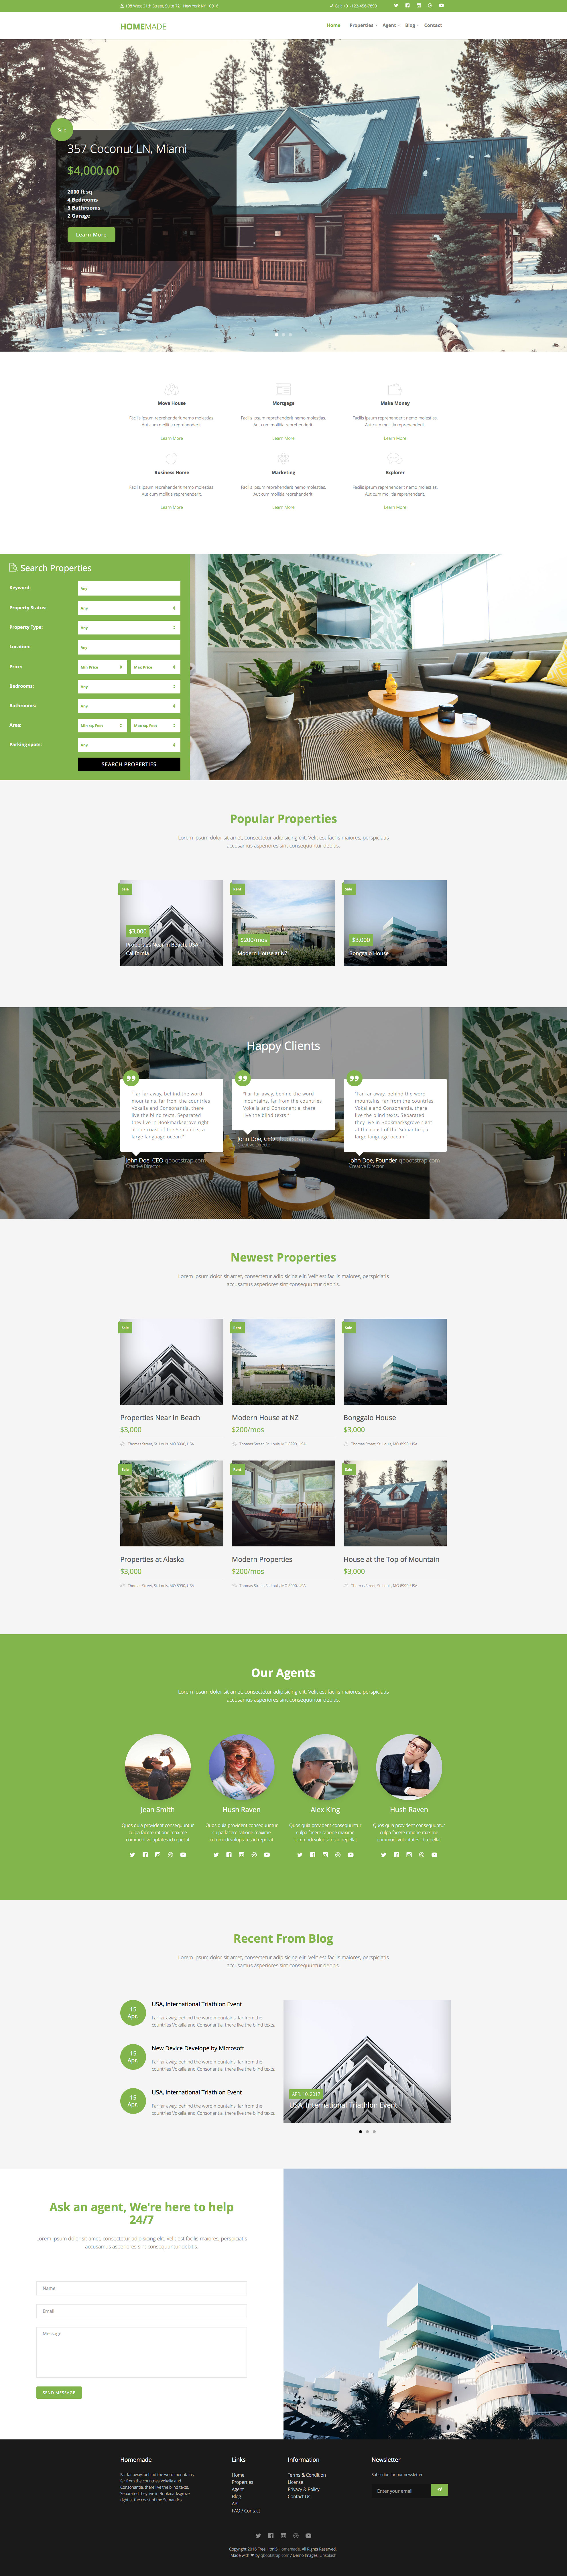 Bootstrap Real Estate Template Free from htmltemplates.co